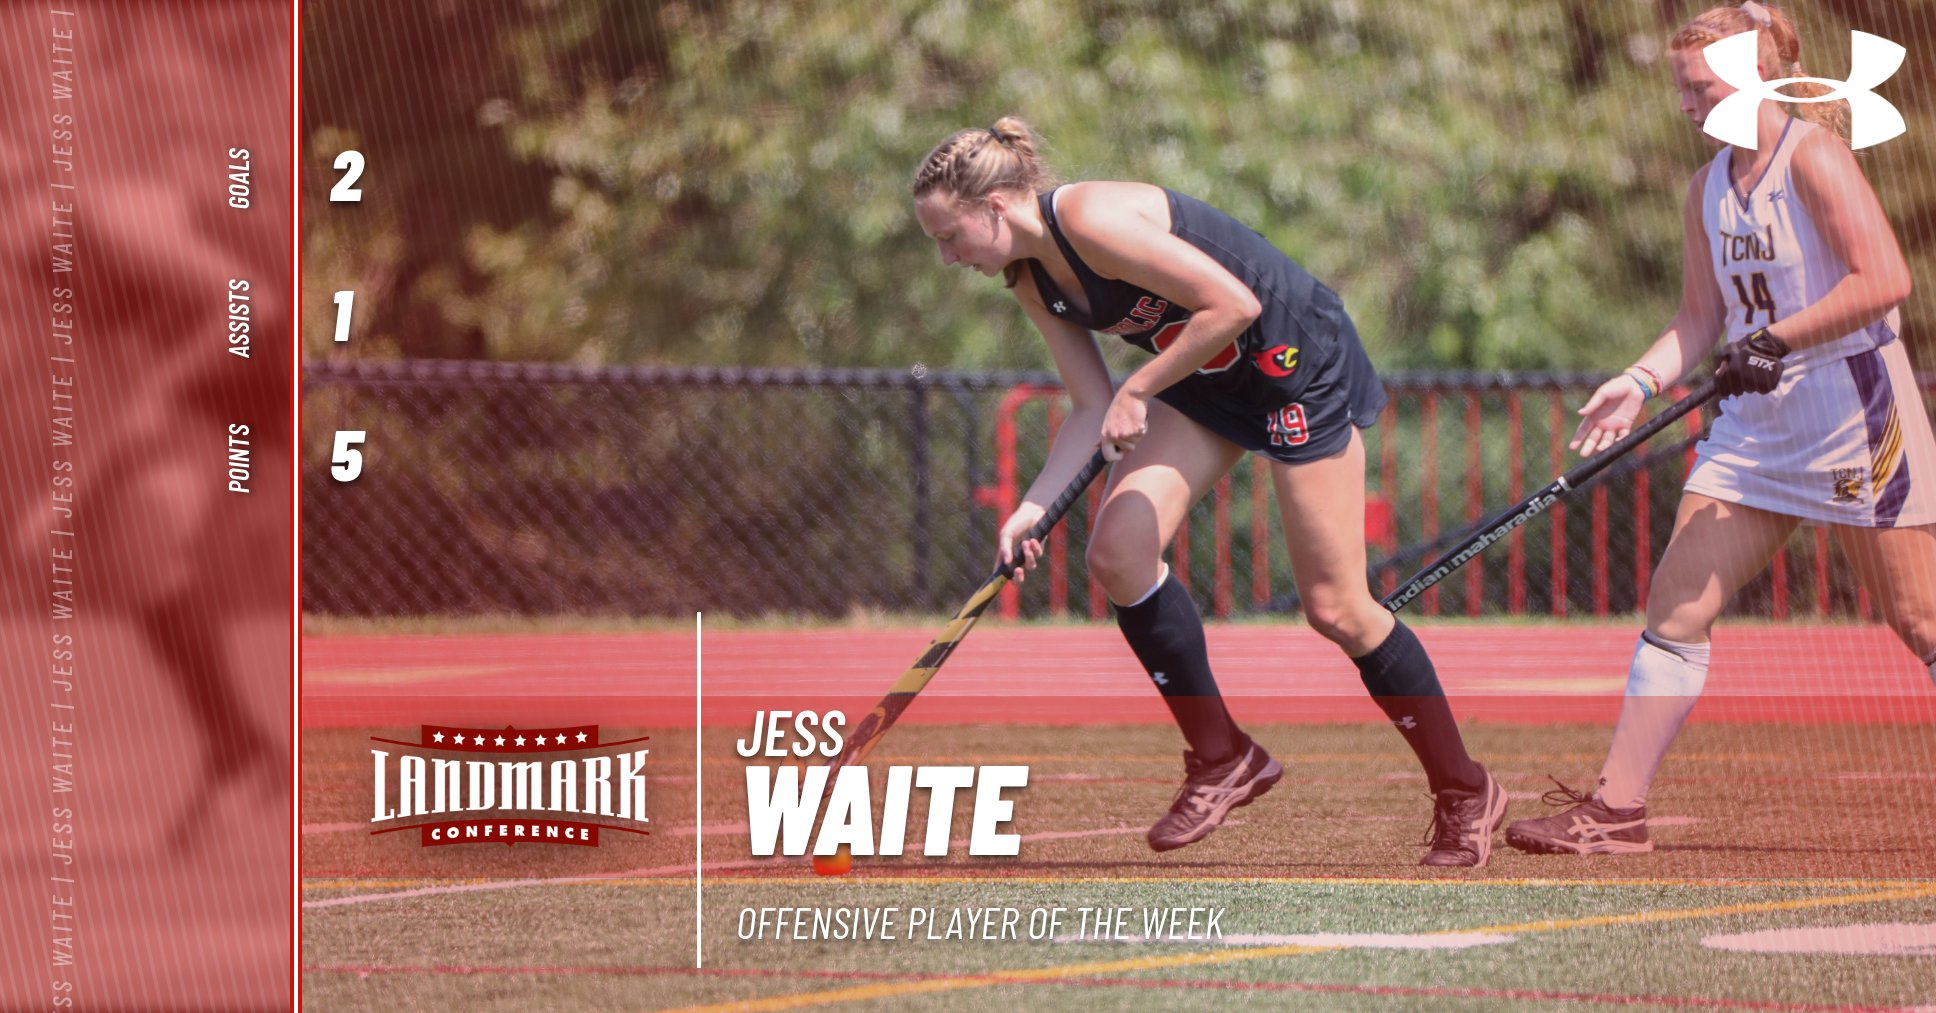 Waite Named Landmark Offensive Player of the Week